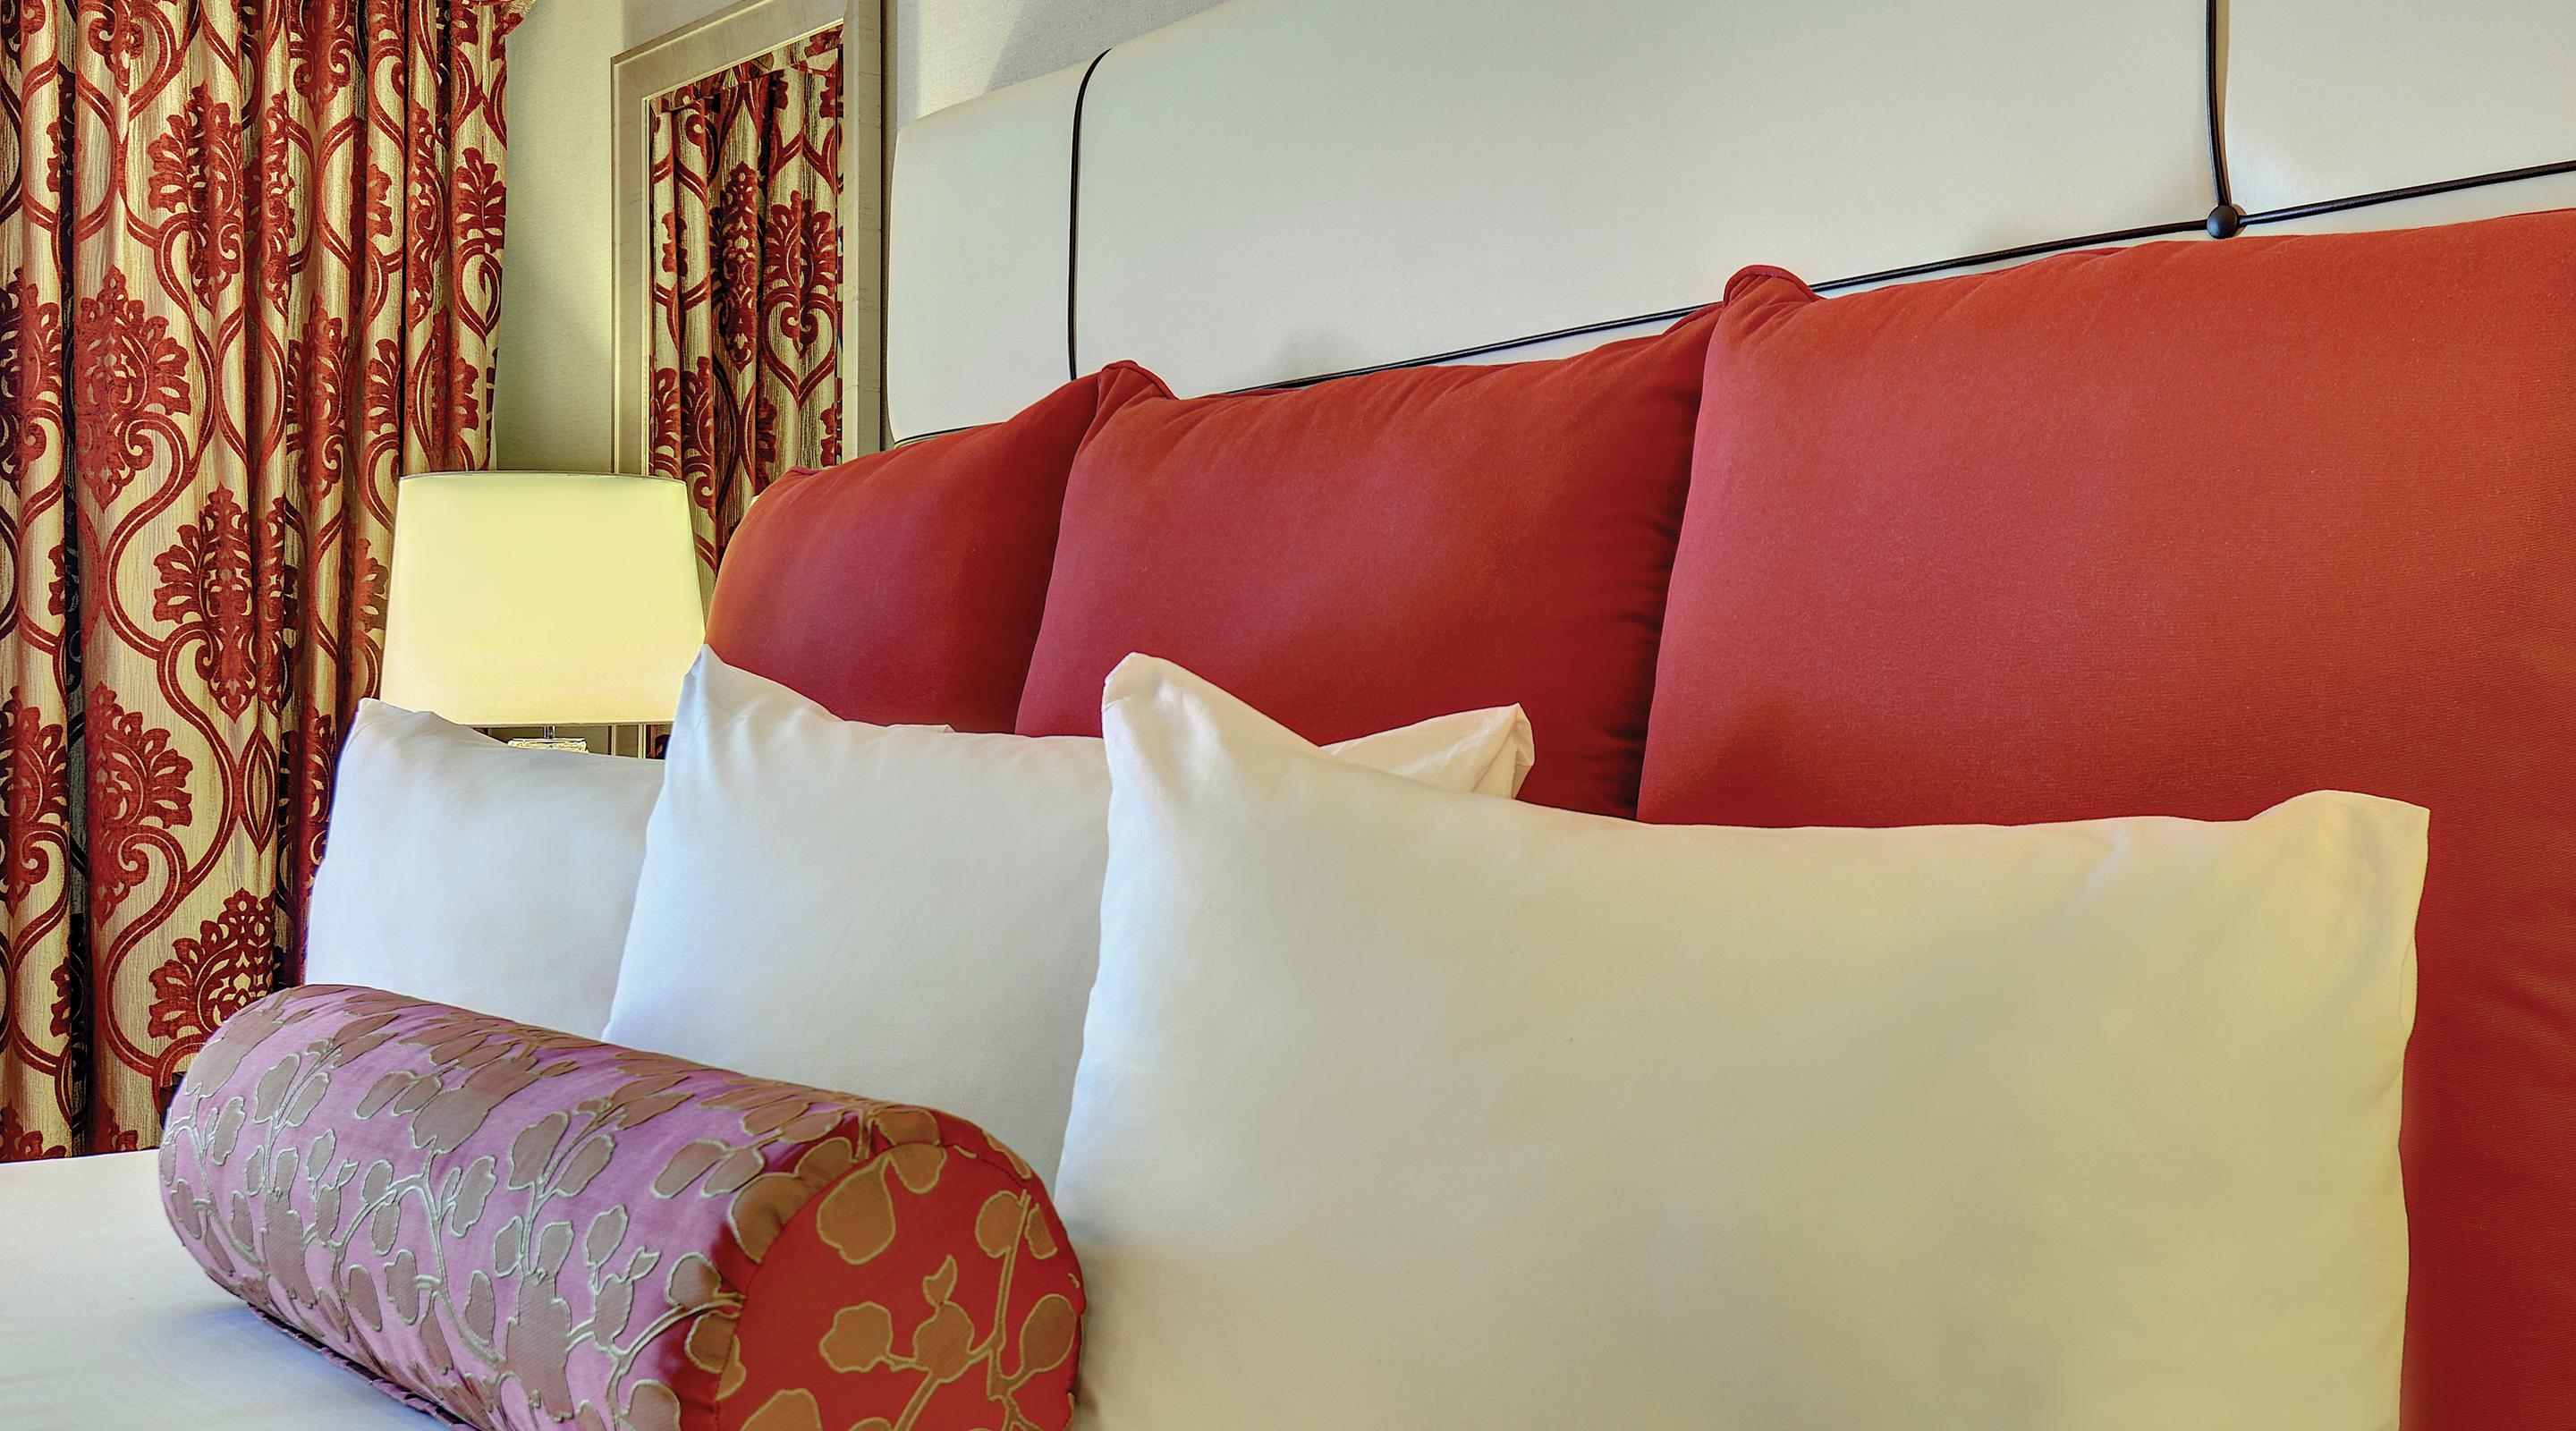 This is an image of the Royal Luxury Suite Pillow Accents.